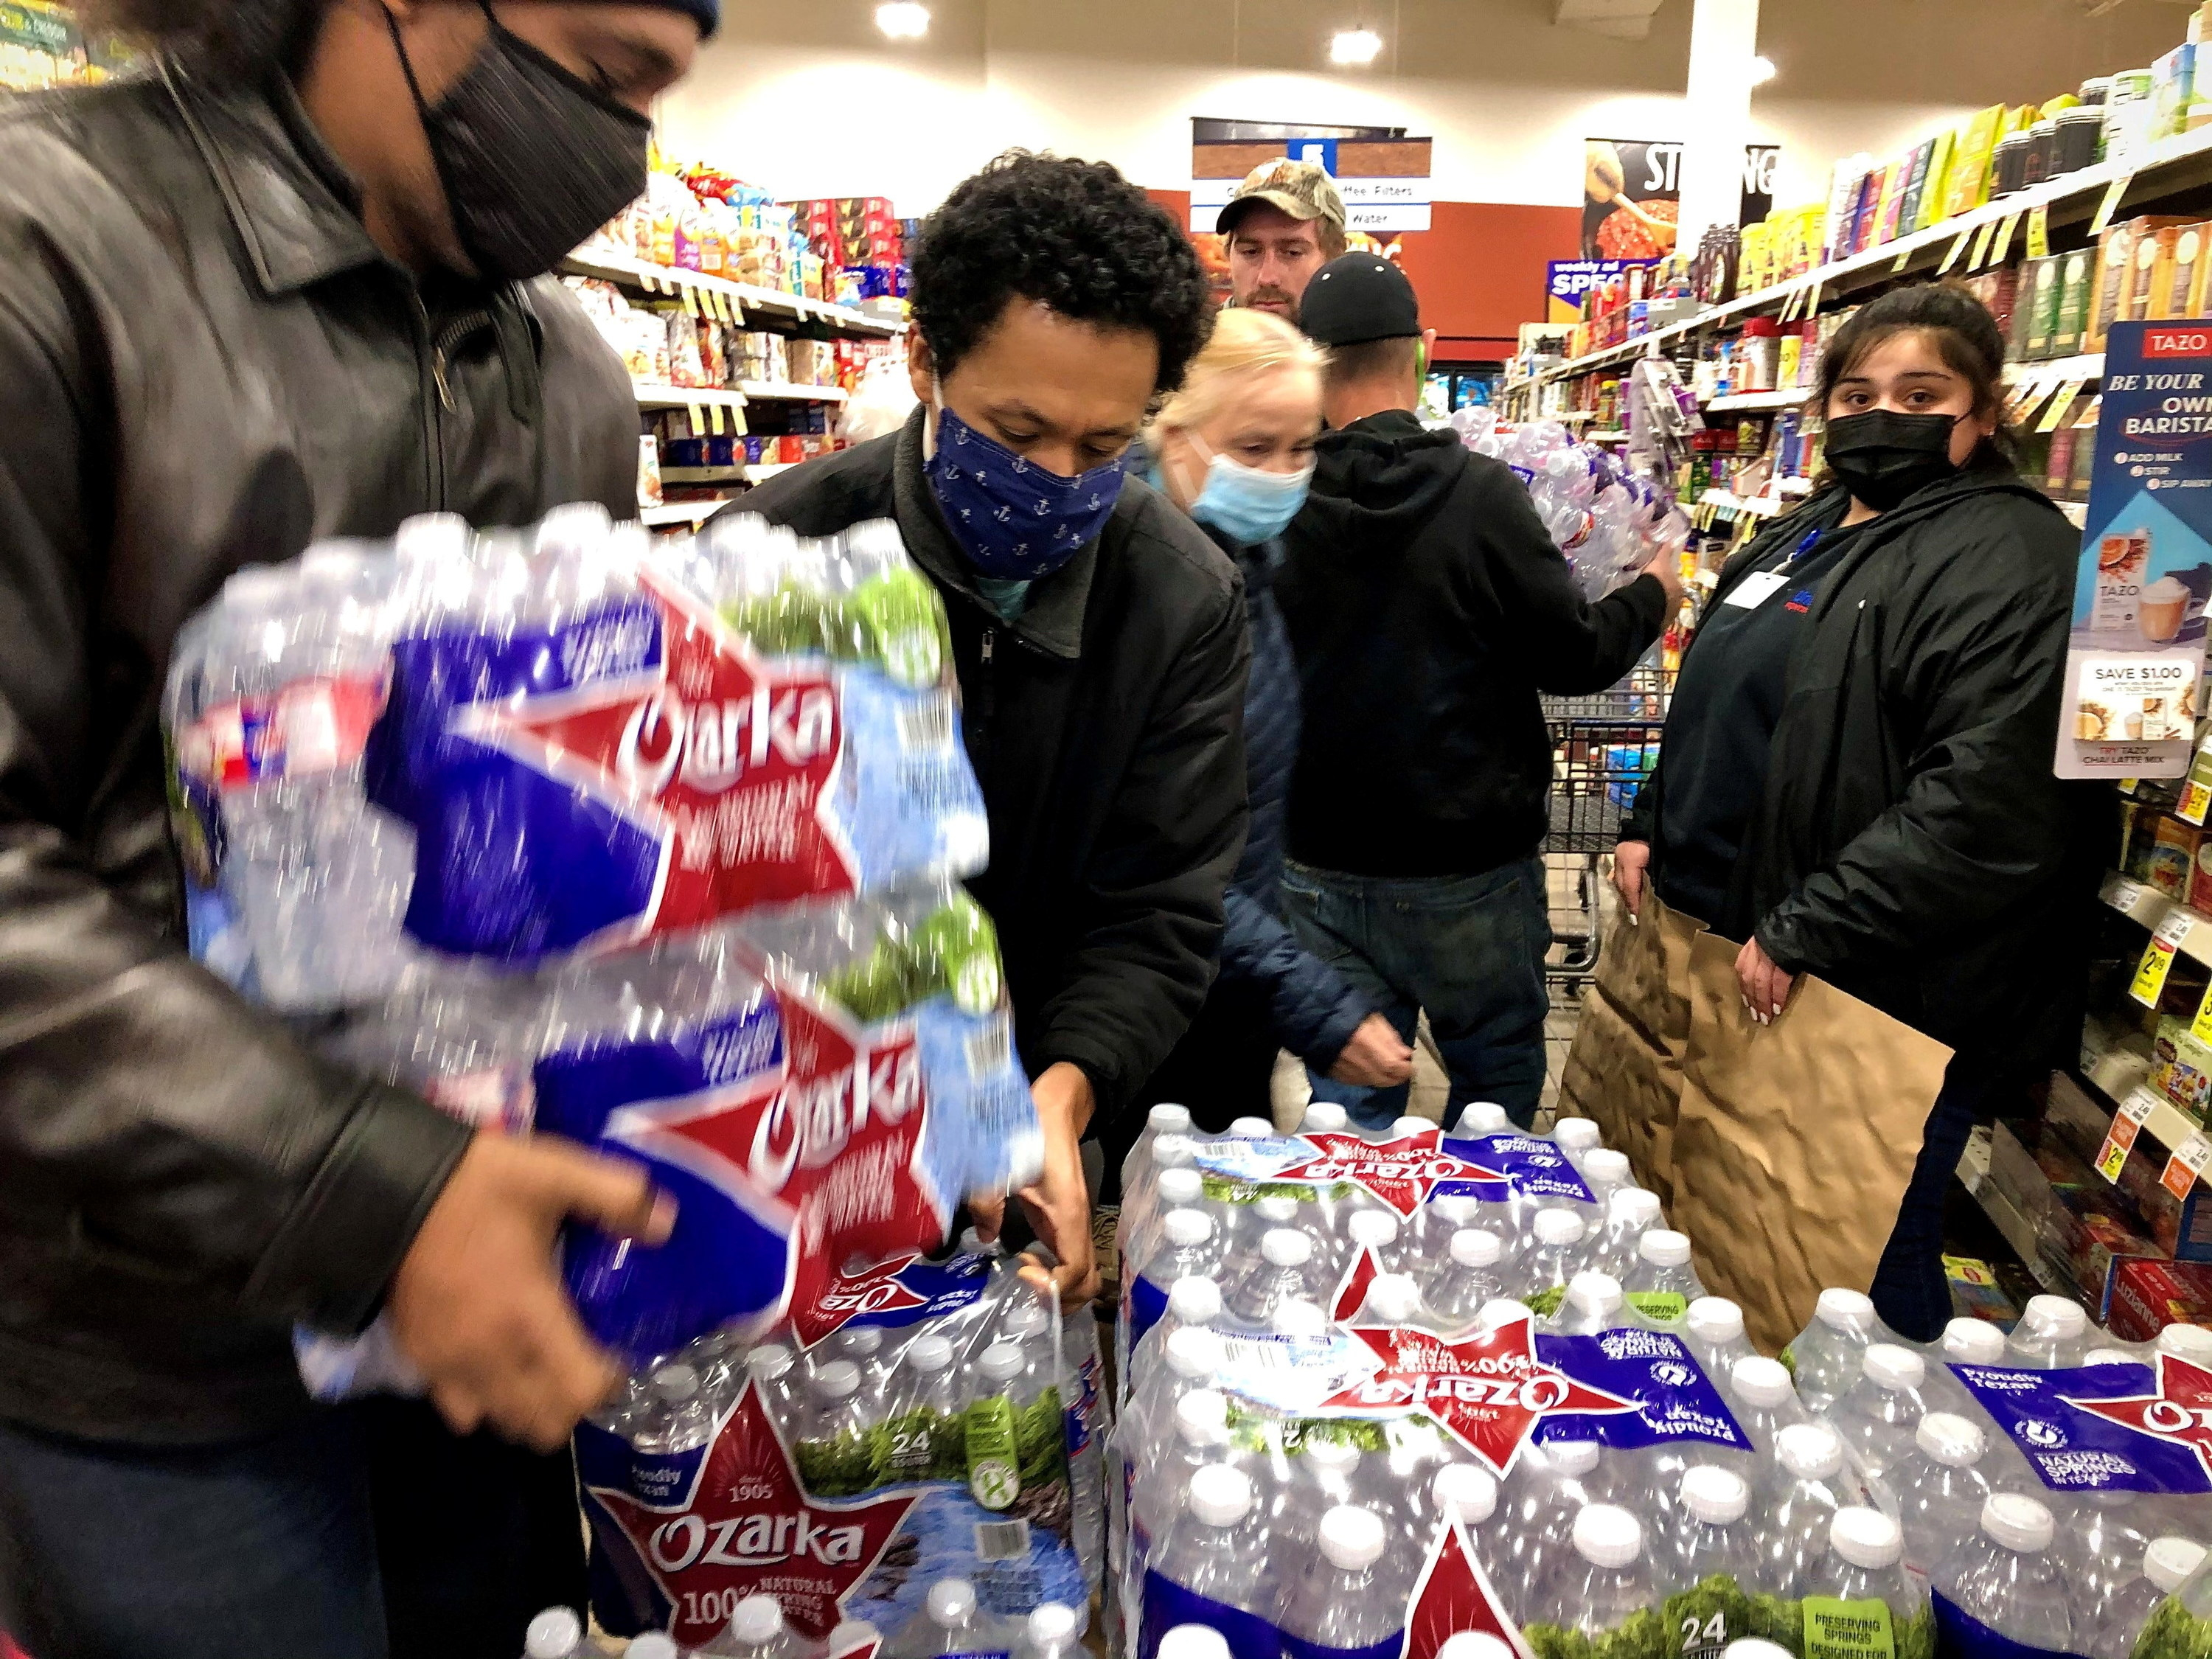 People grabbing at cases of water in a supermarket